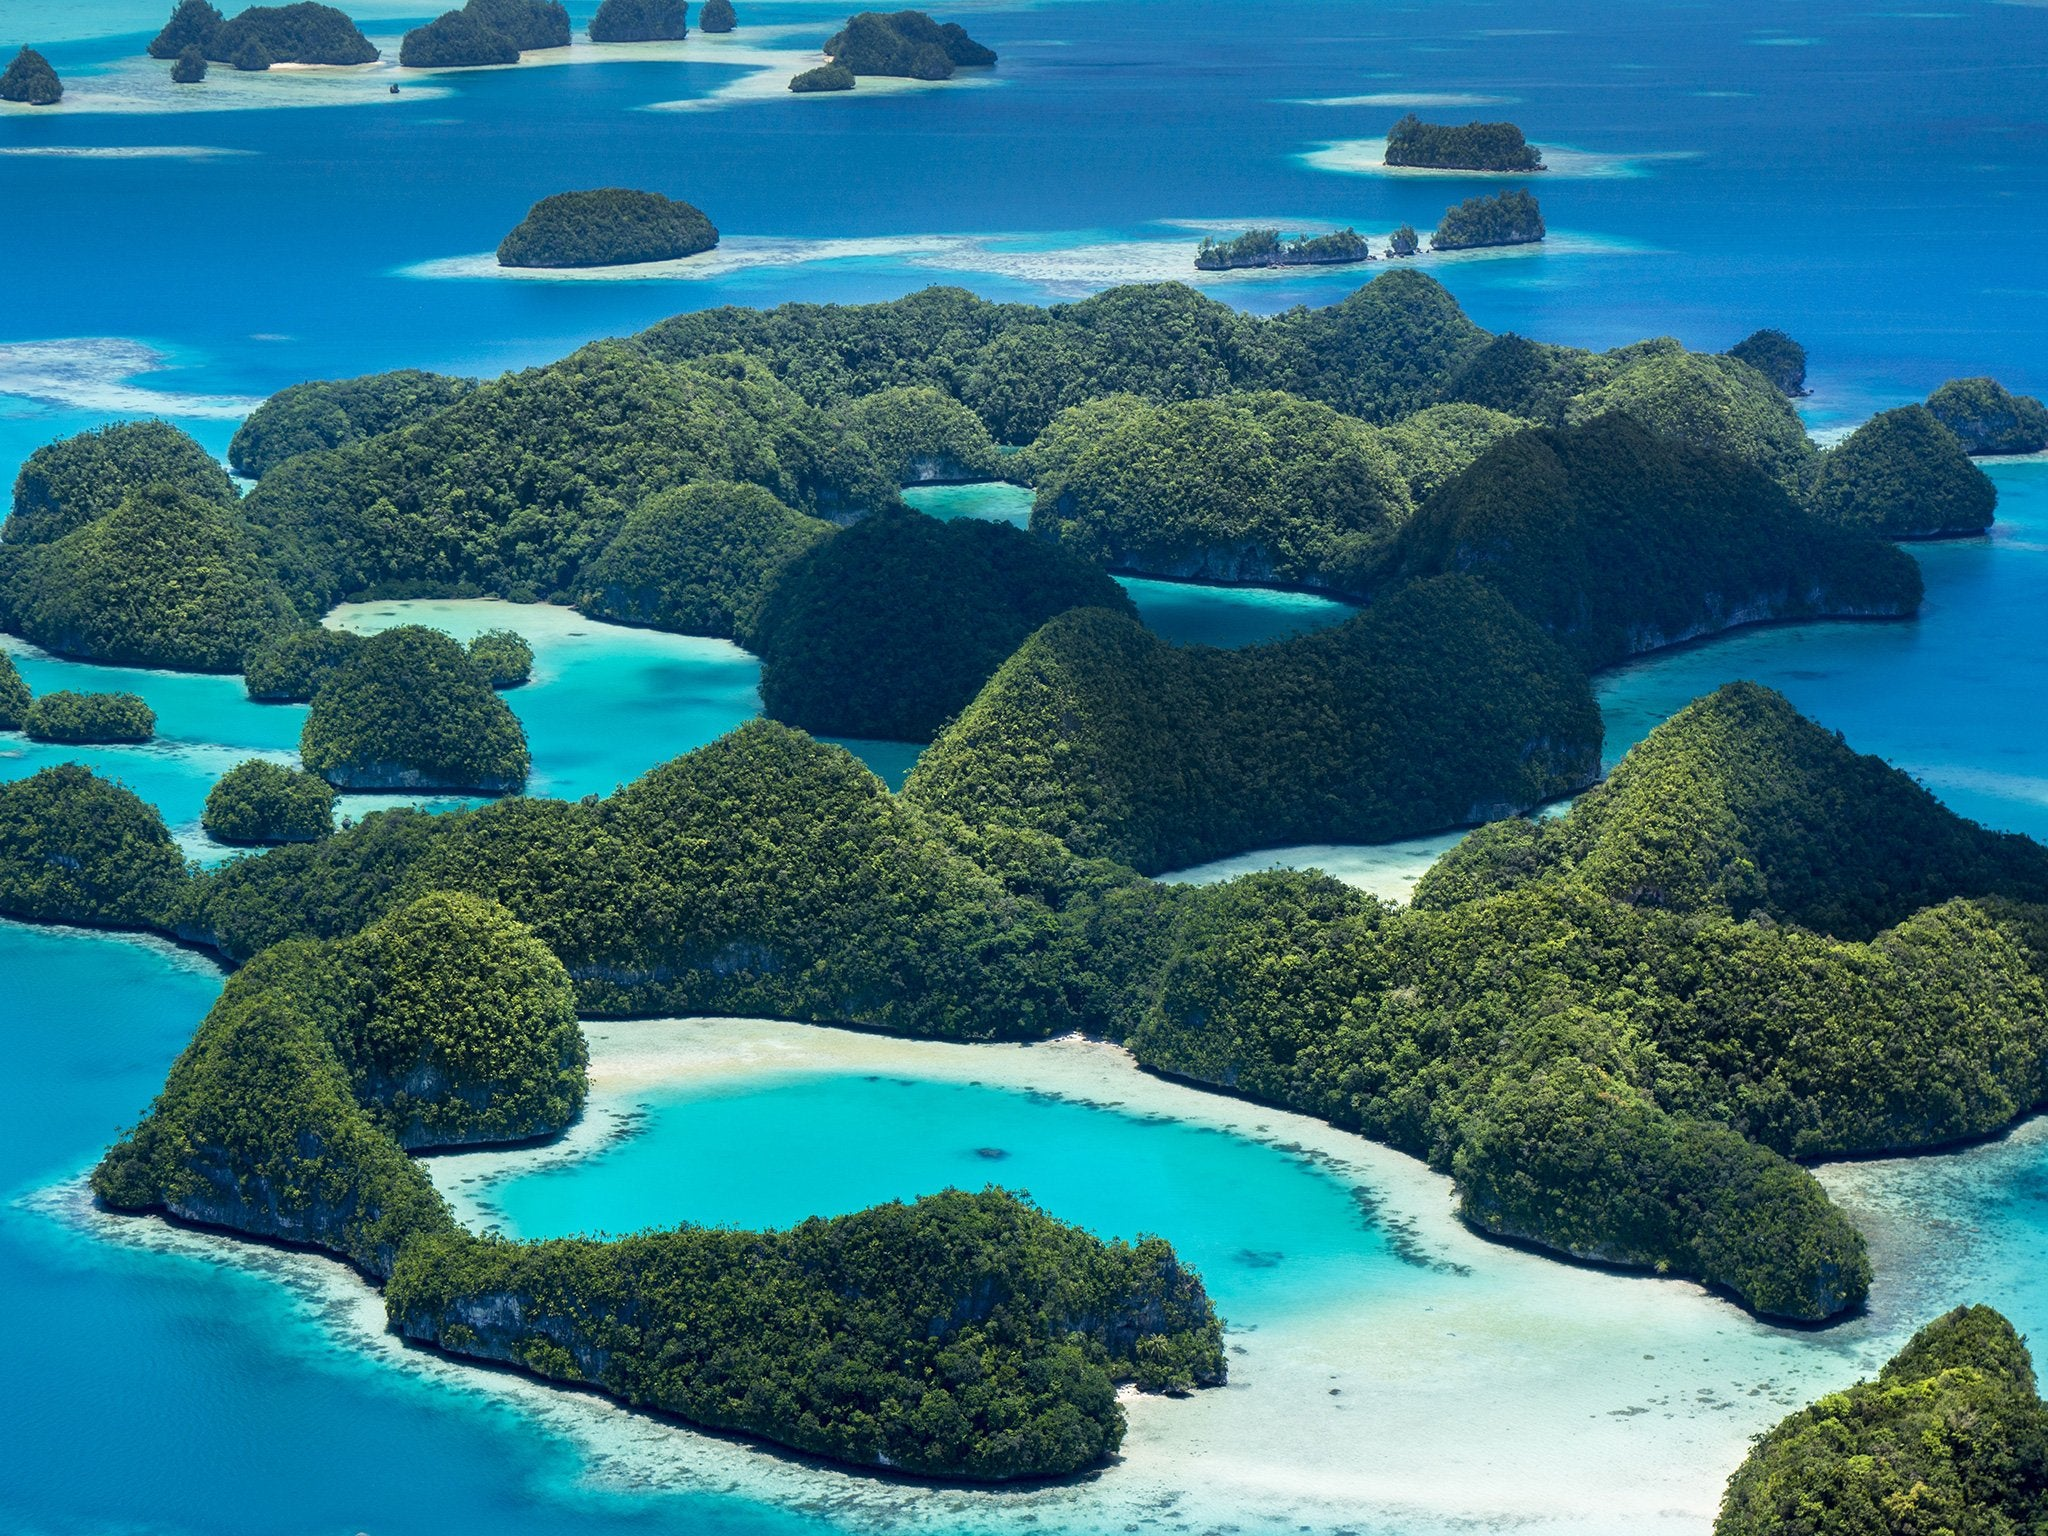 Palau steps up! The first country to ban chemical sunscreens toxic to Coral Reefs